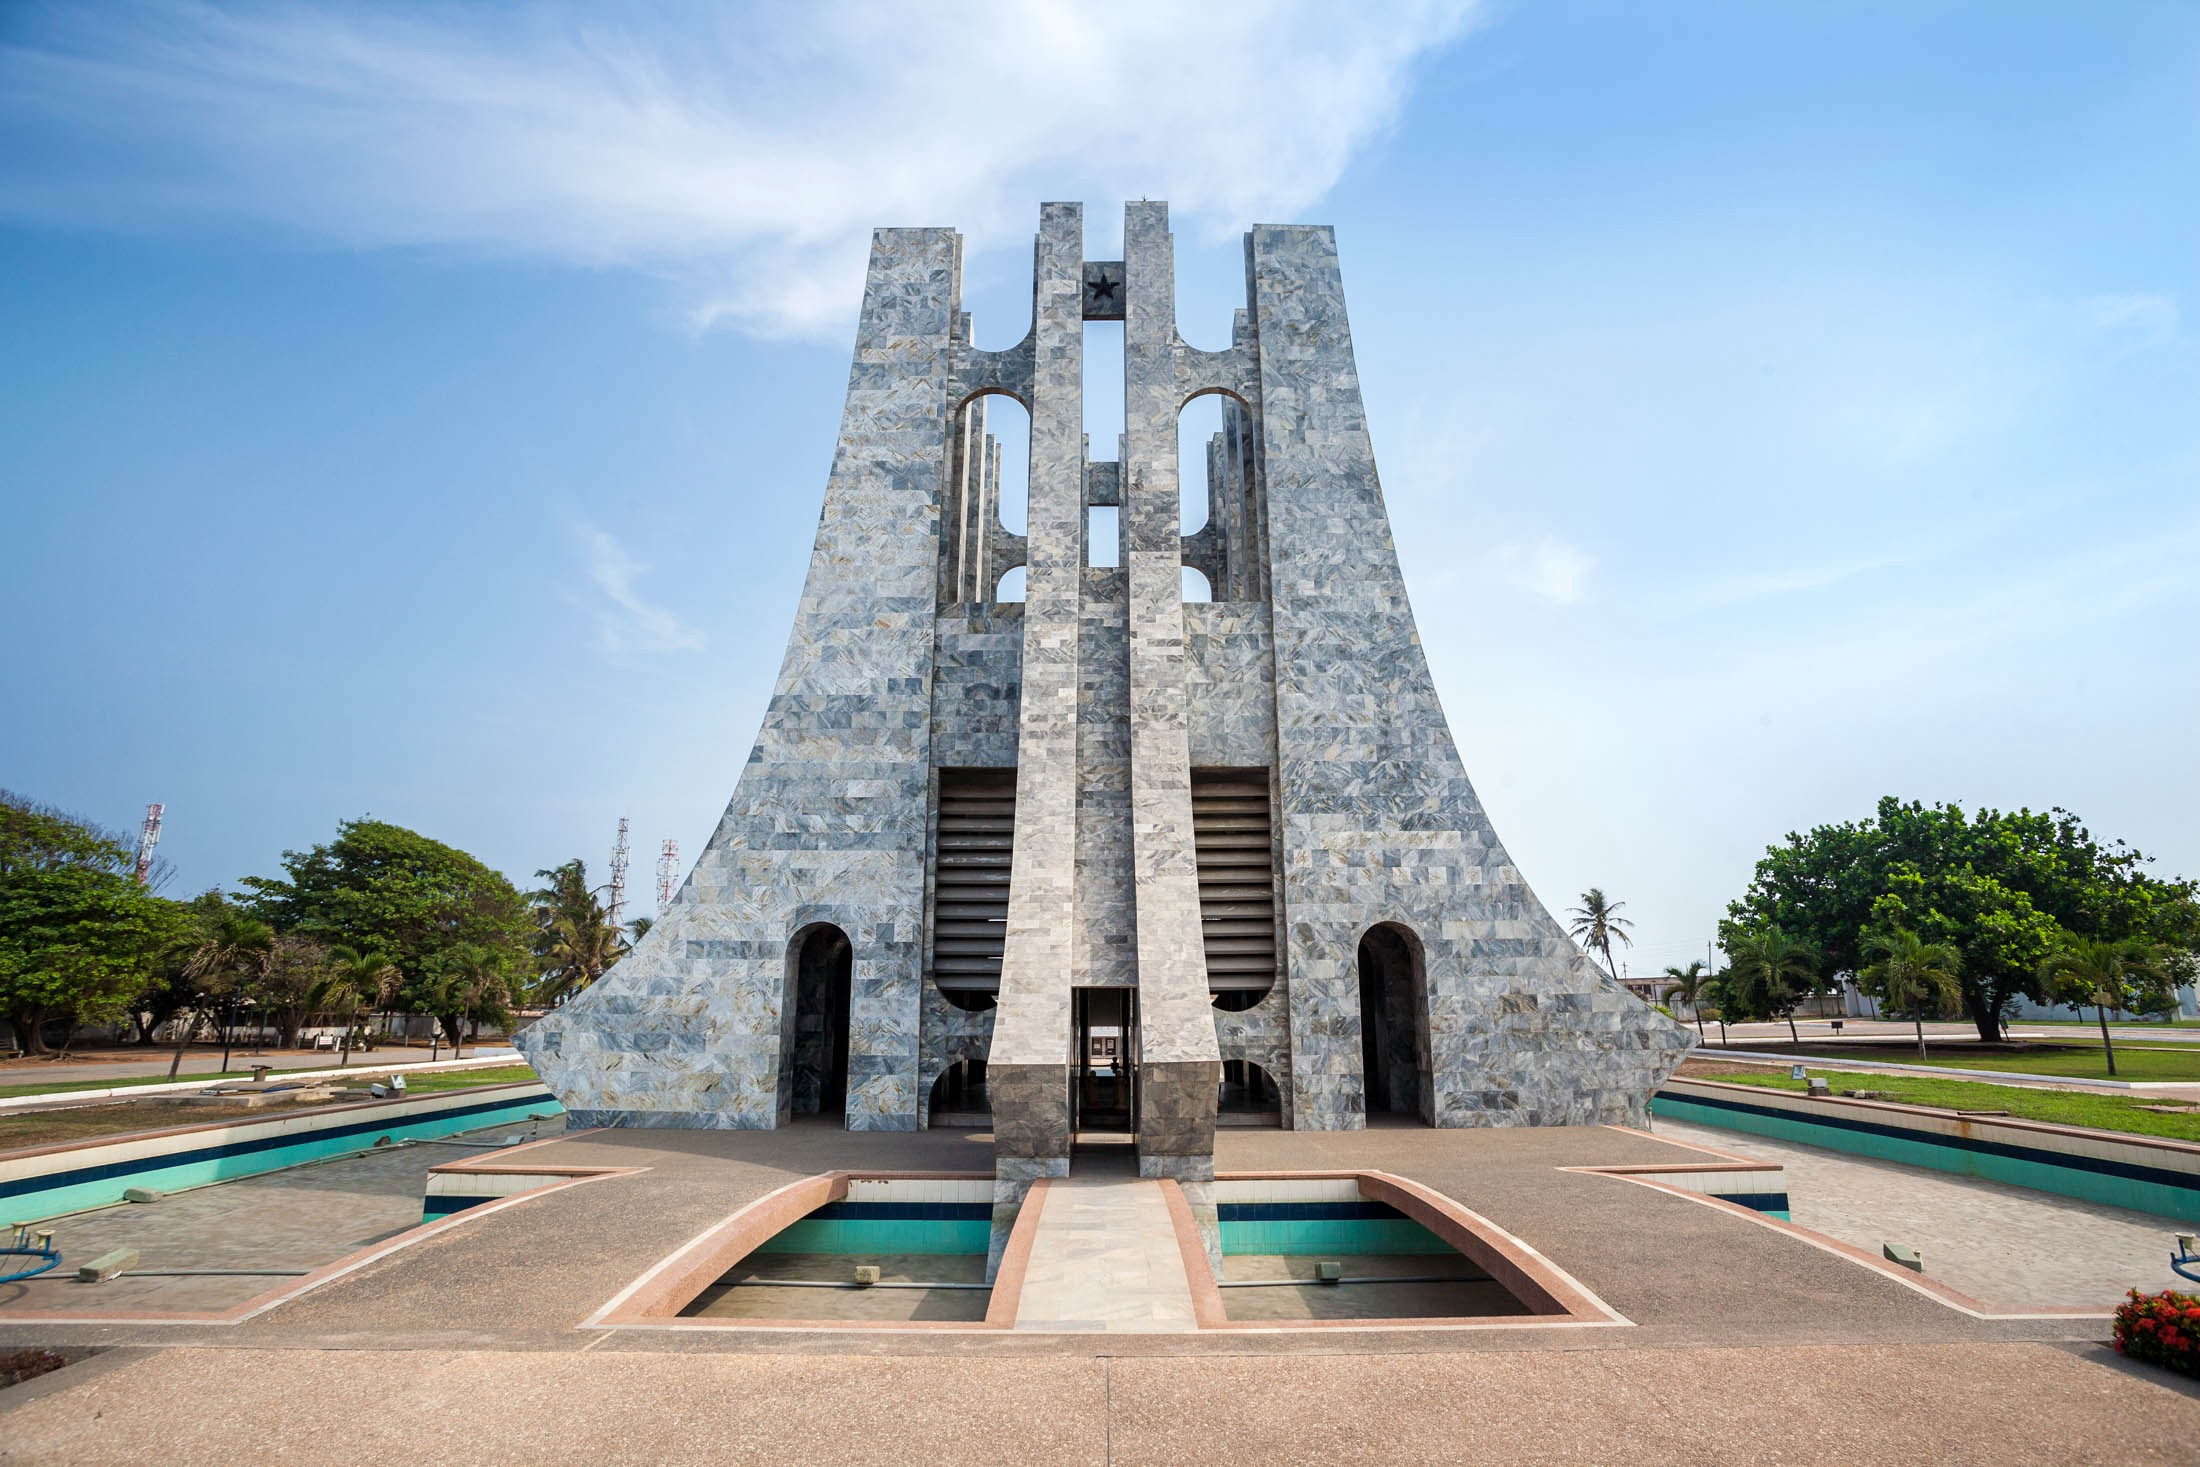 Nkrumah Memorial Park???First president of independent Ghana, West Africa